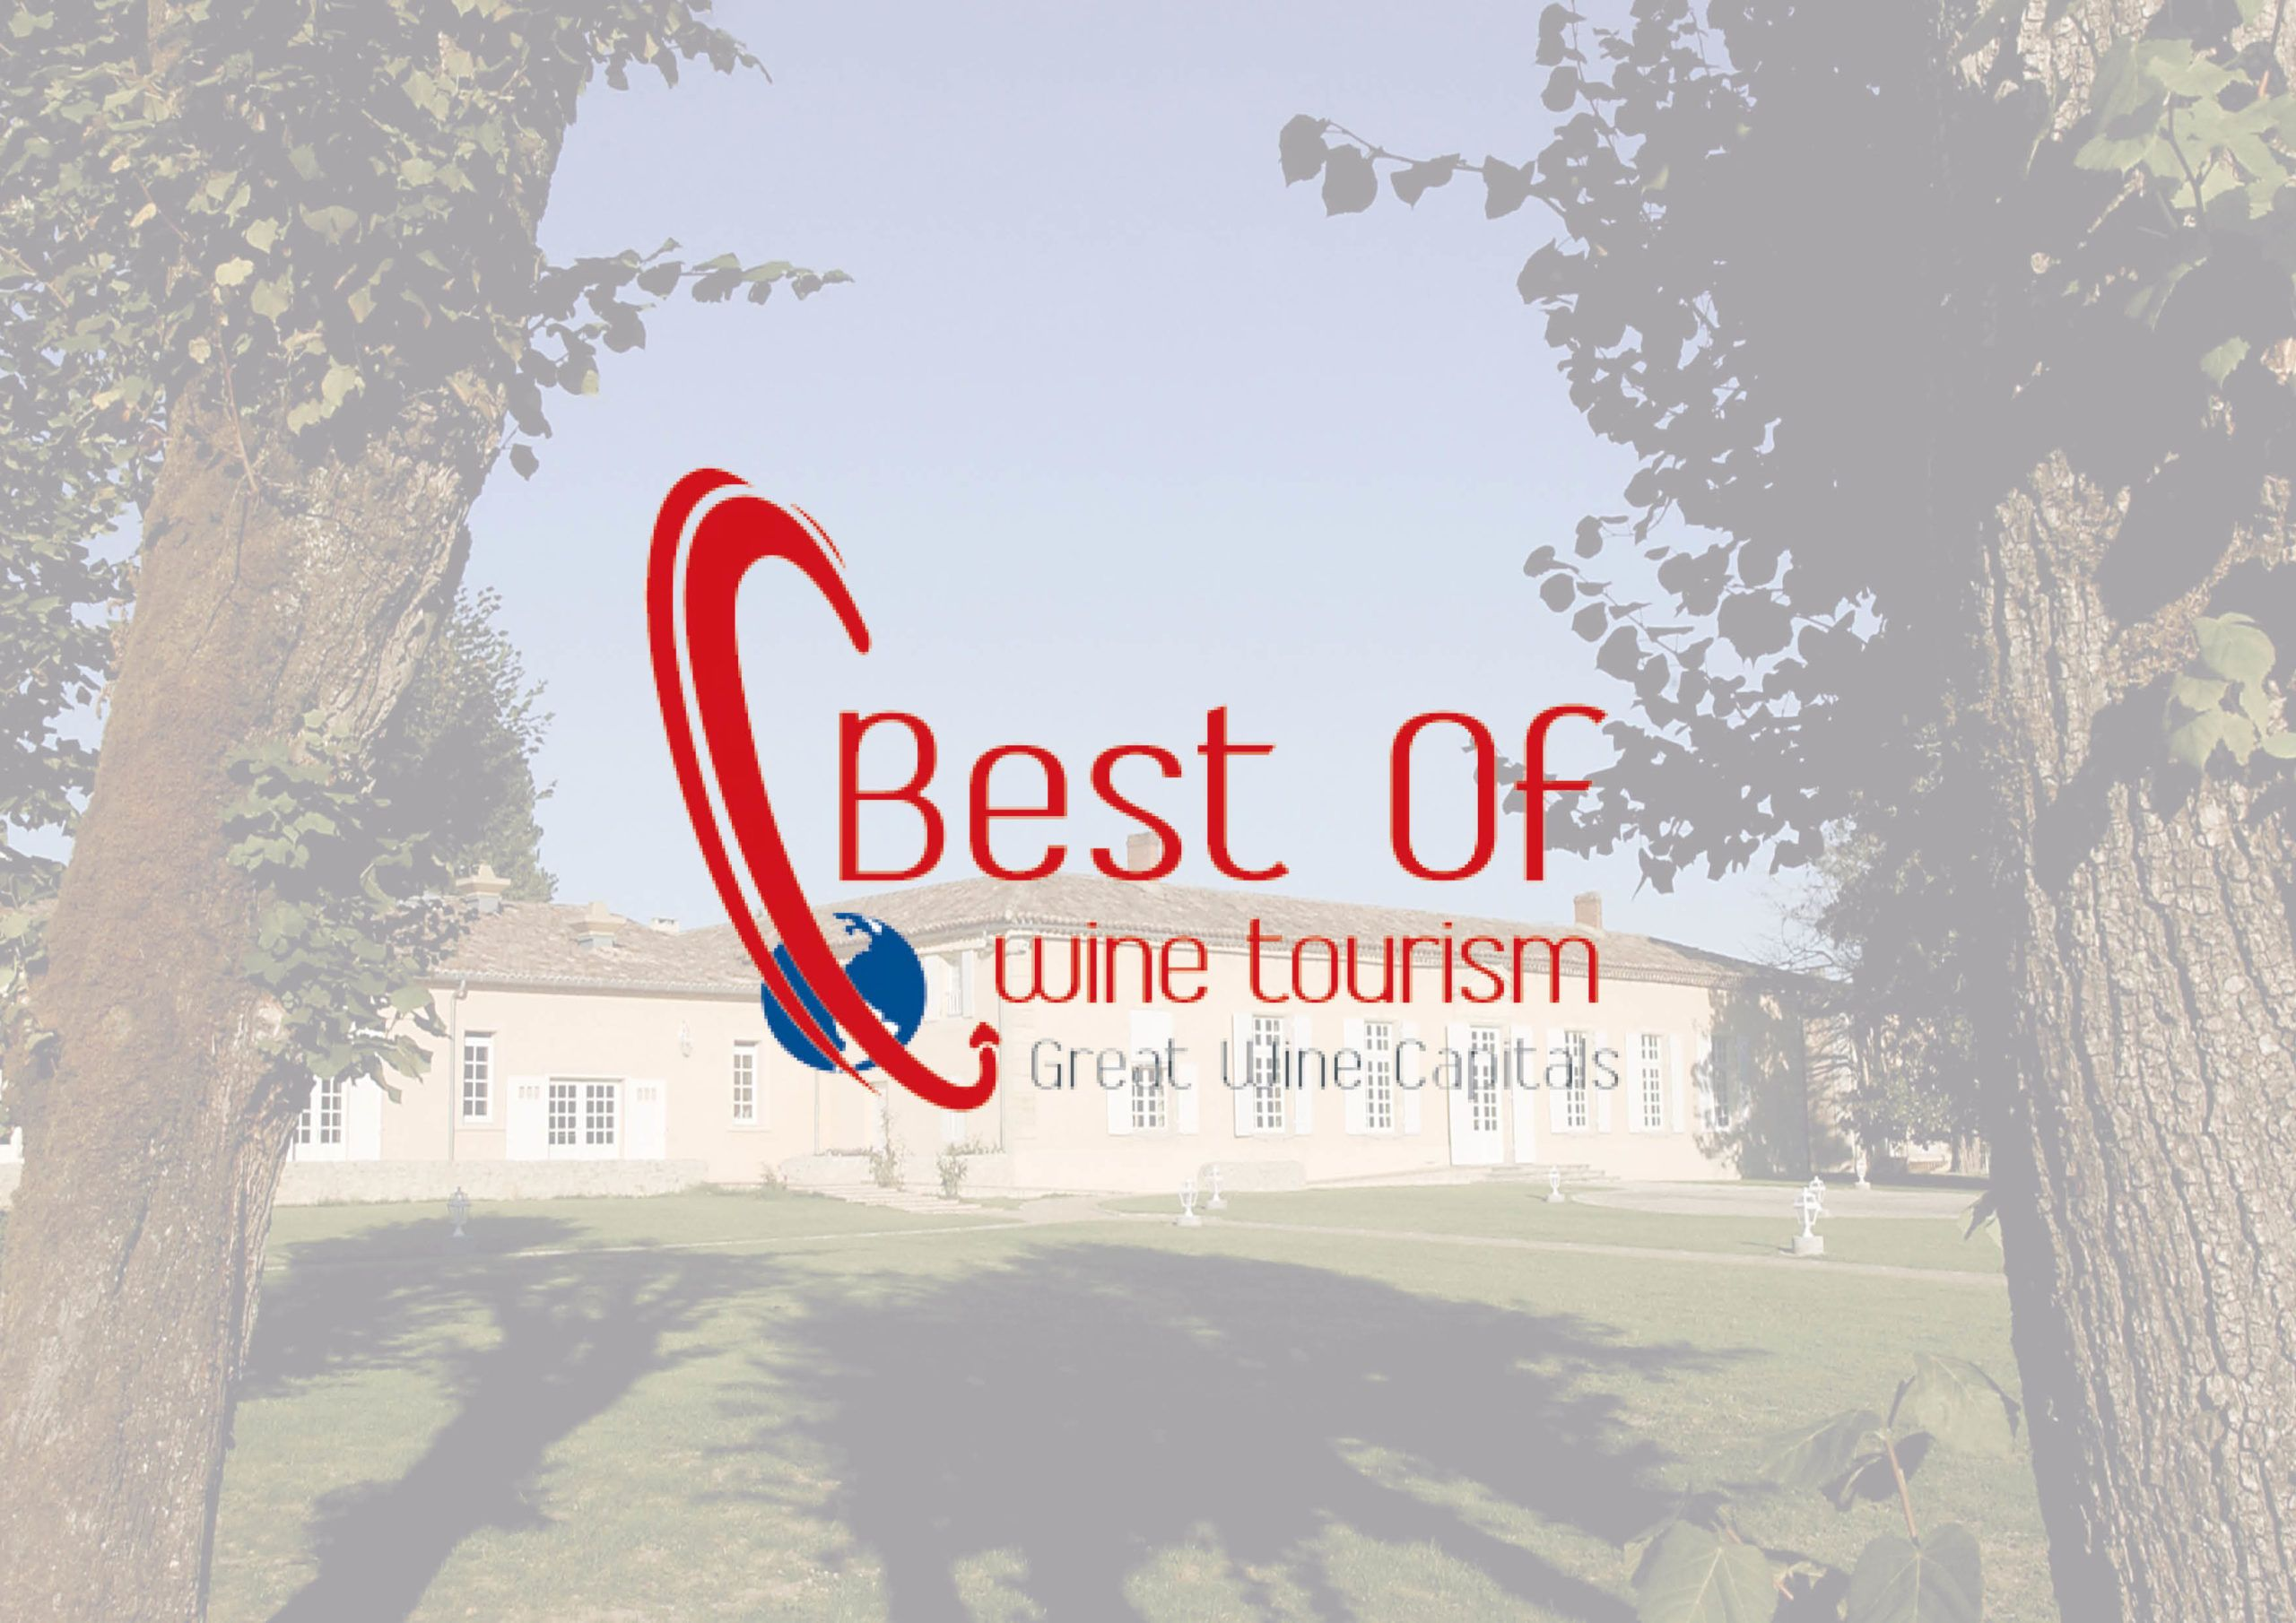 Best of Wine Tourism - Cadillac